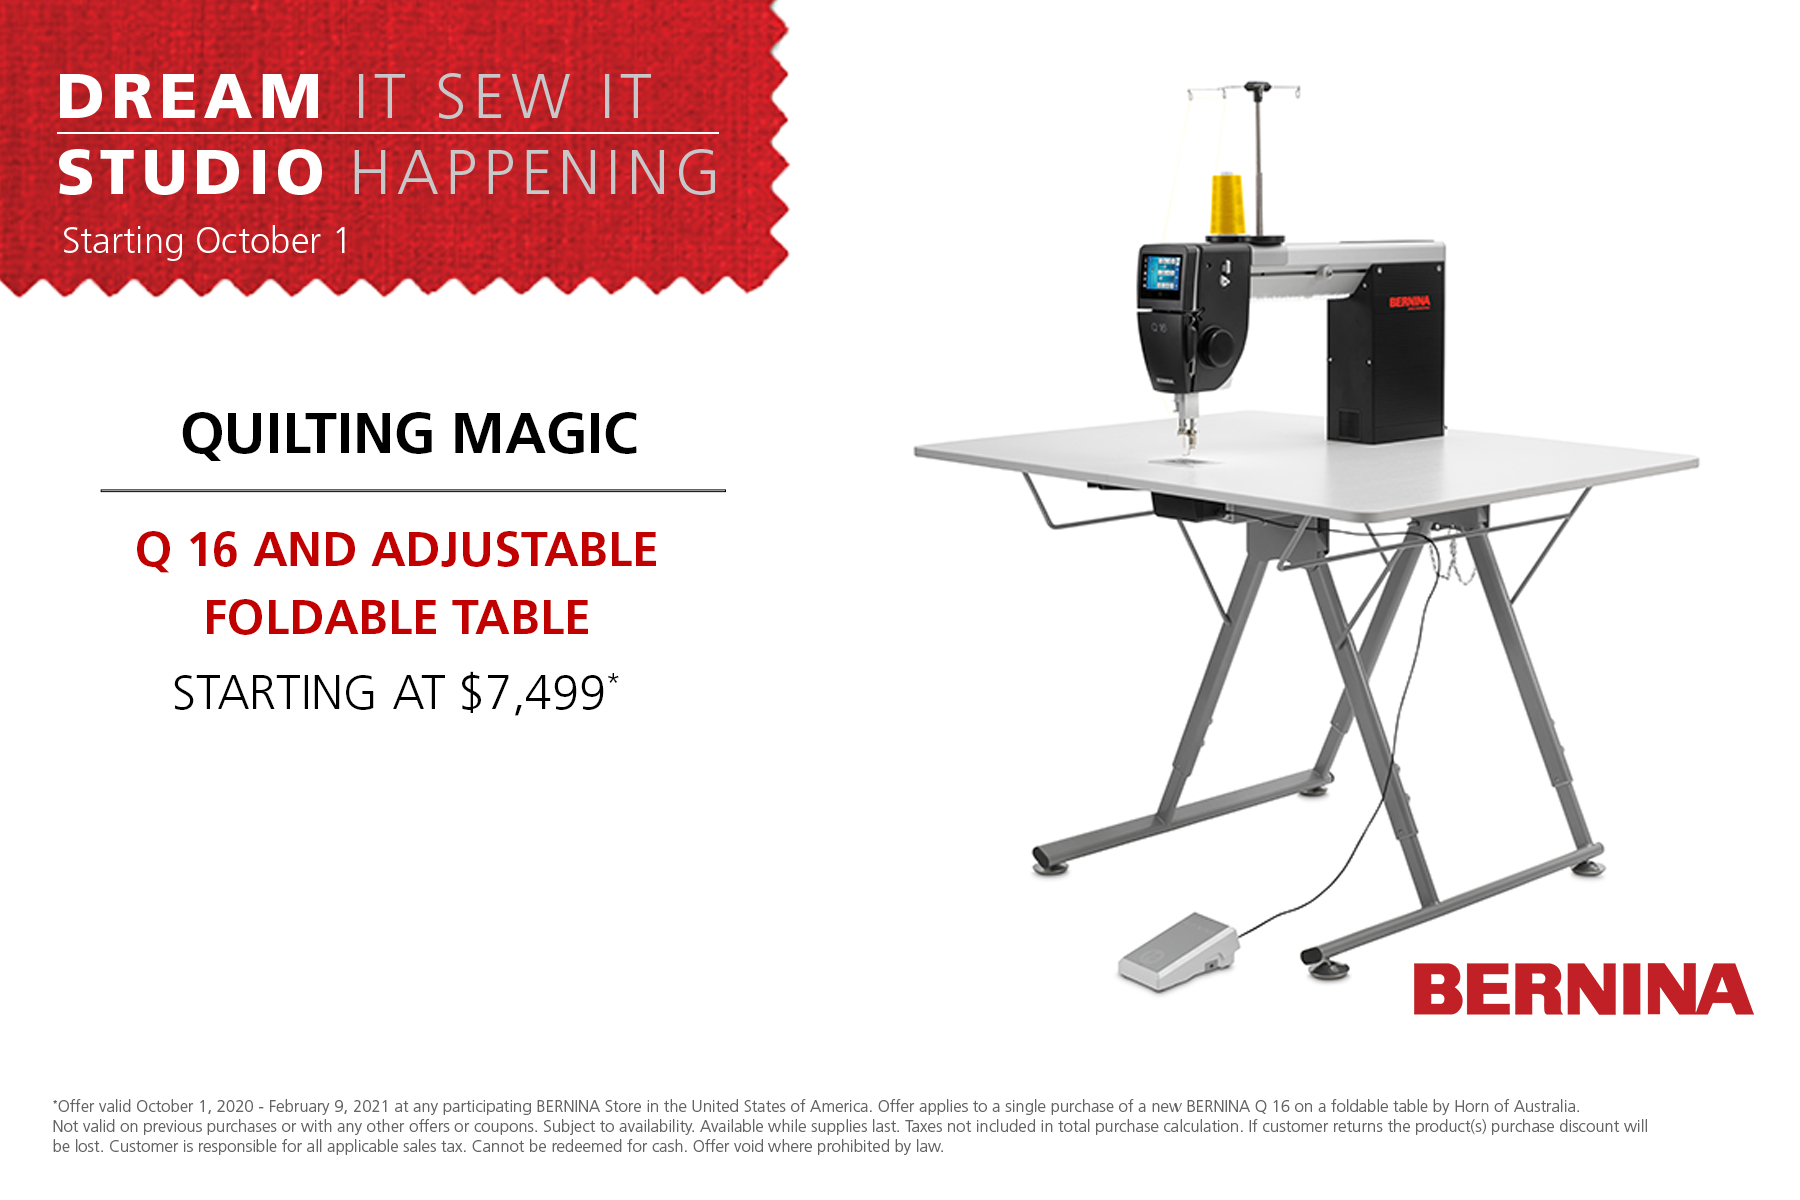 Quilting-Magic-Adjustable-Table